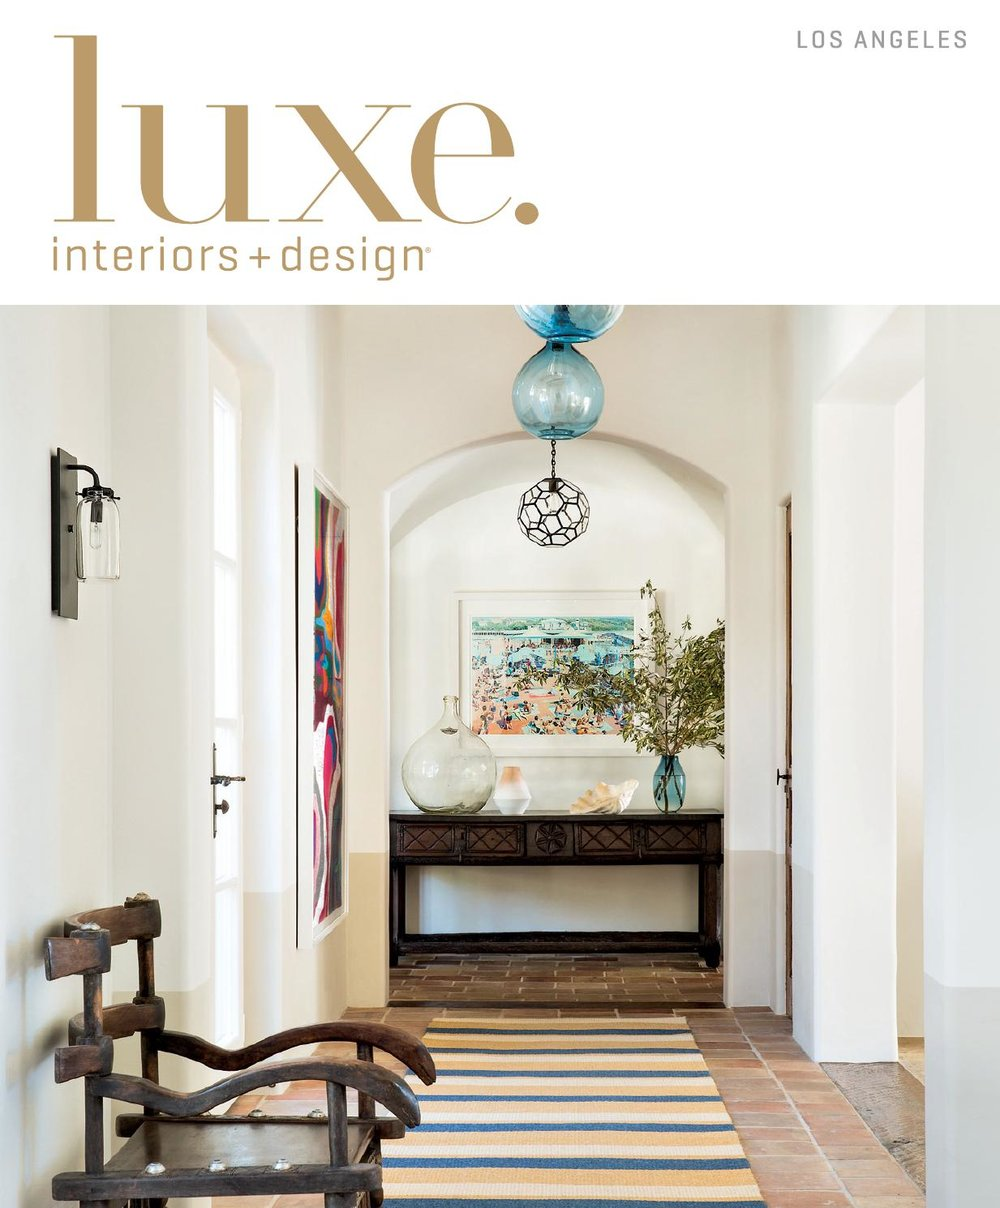 LUXE Interiors + Design - LOS ANGELES